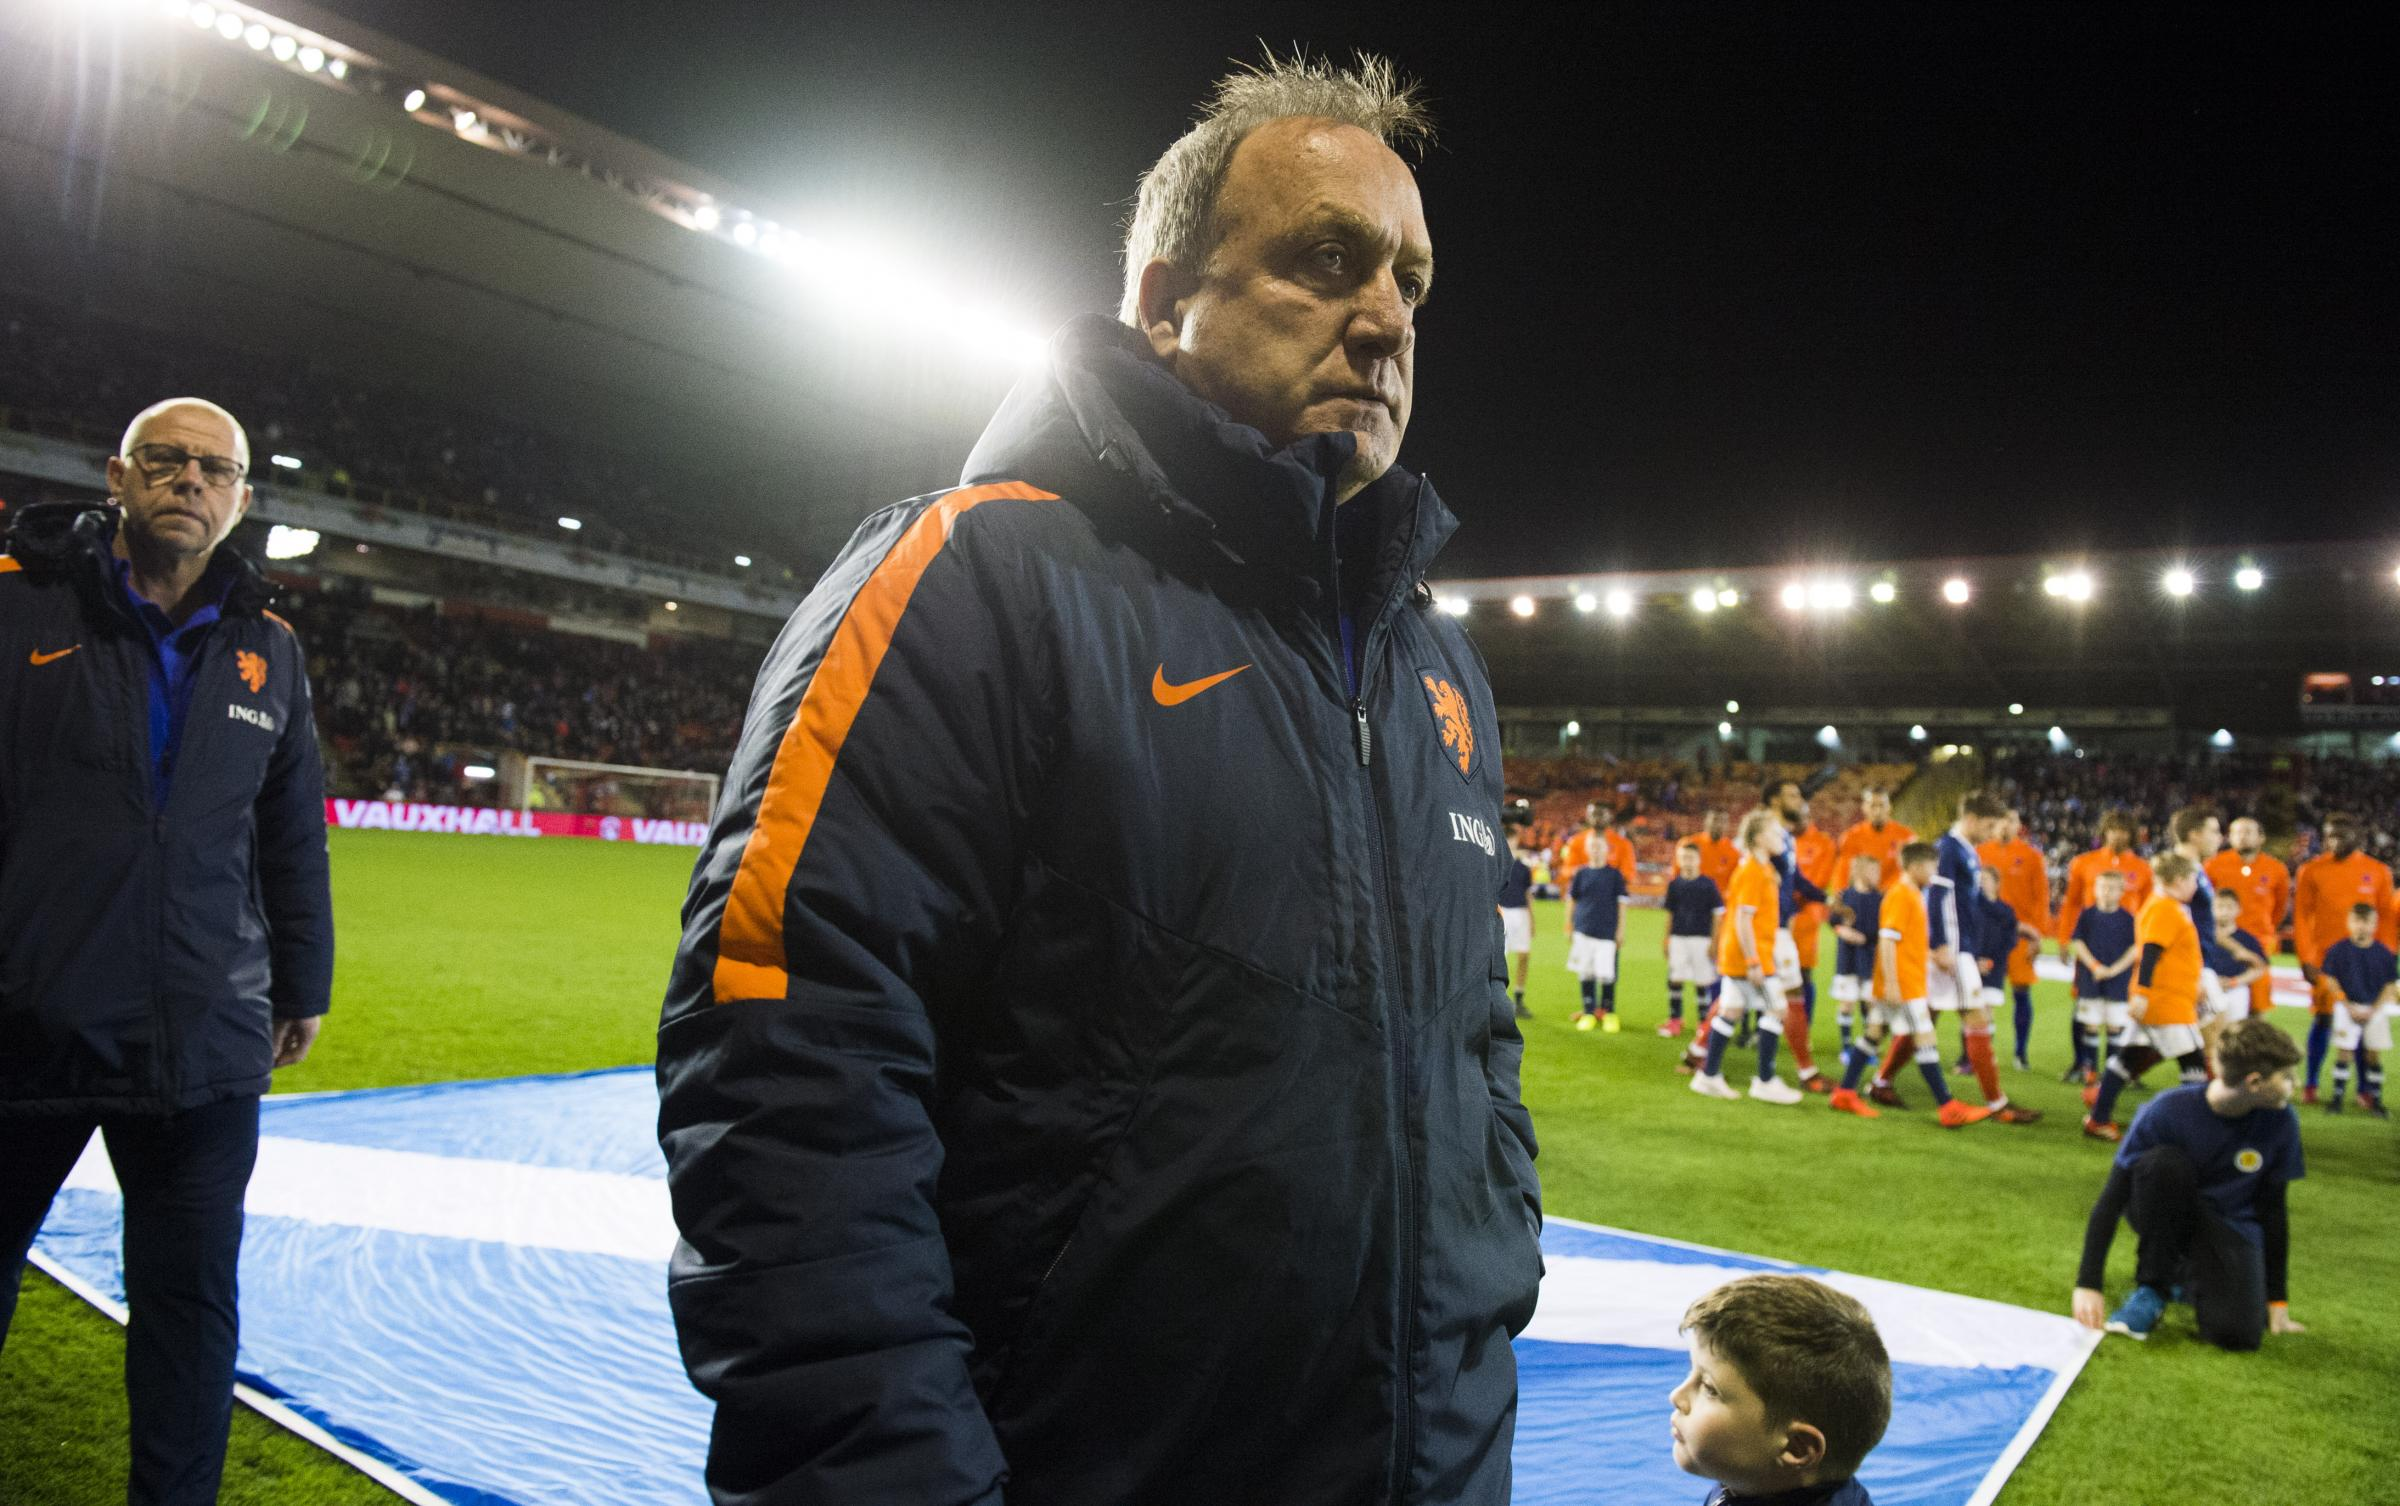 Netherlands manager Dick Advocaat at Pittodrie last night.